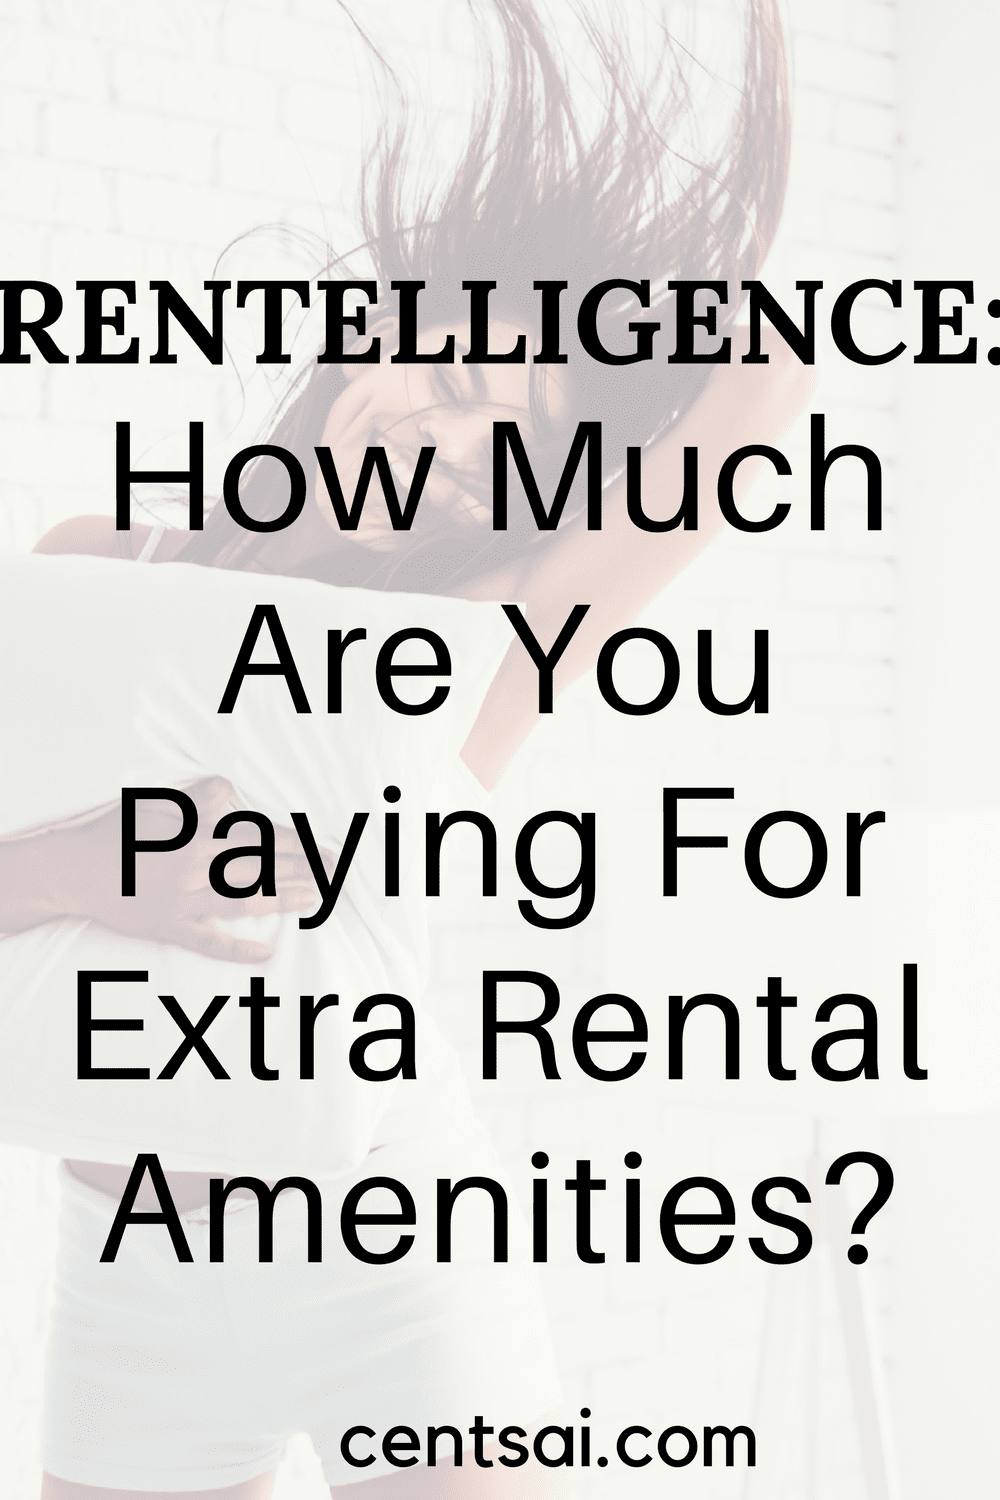 Rentelligence: How Much Are You Paying For Extra Rental Amenities?